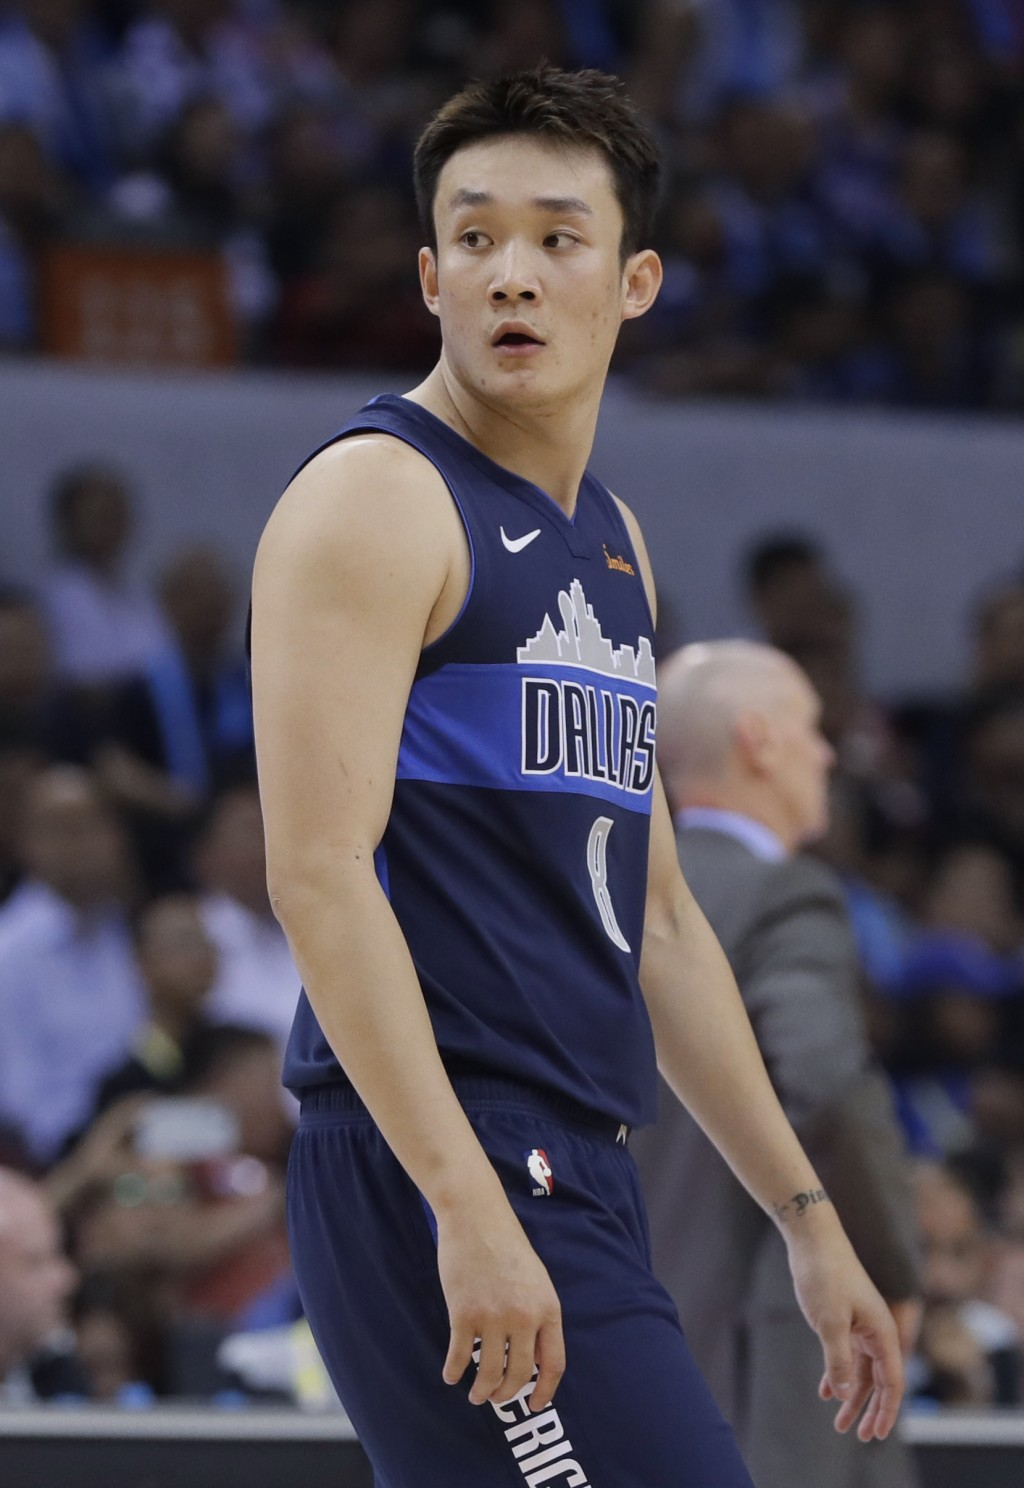 Ding Yanyuhang of Dallas Mavericks, looks on during the Shenzhen basketball match of the NBA China Games against Philadelphia 76ers in Shenzhen city,